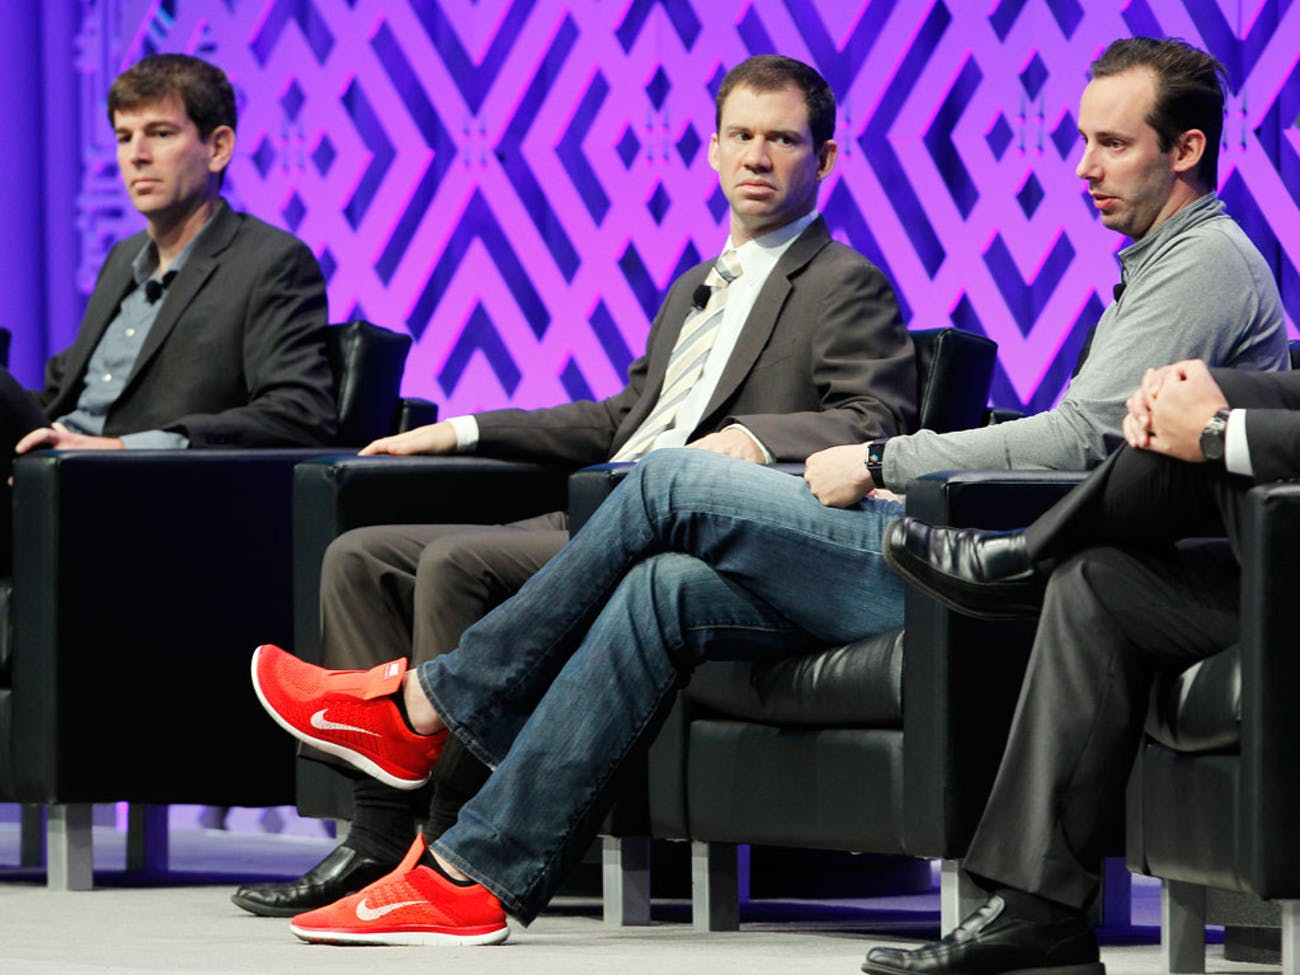 Anthony Levandowski (far right) on a panel discussion.